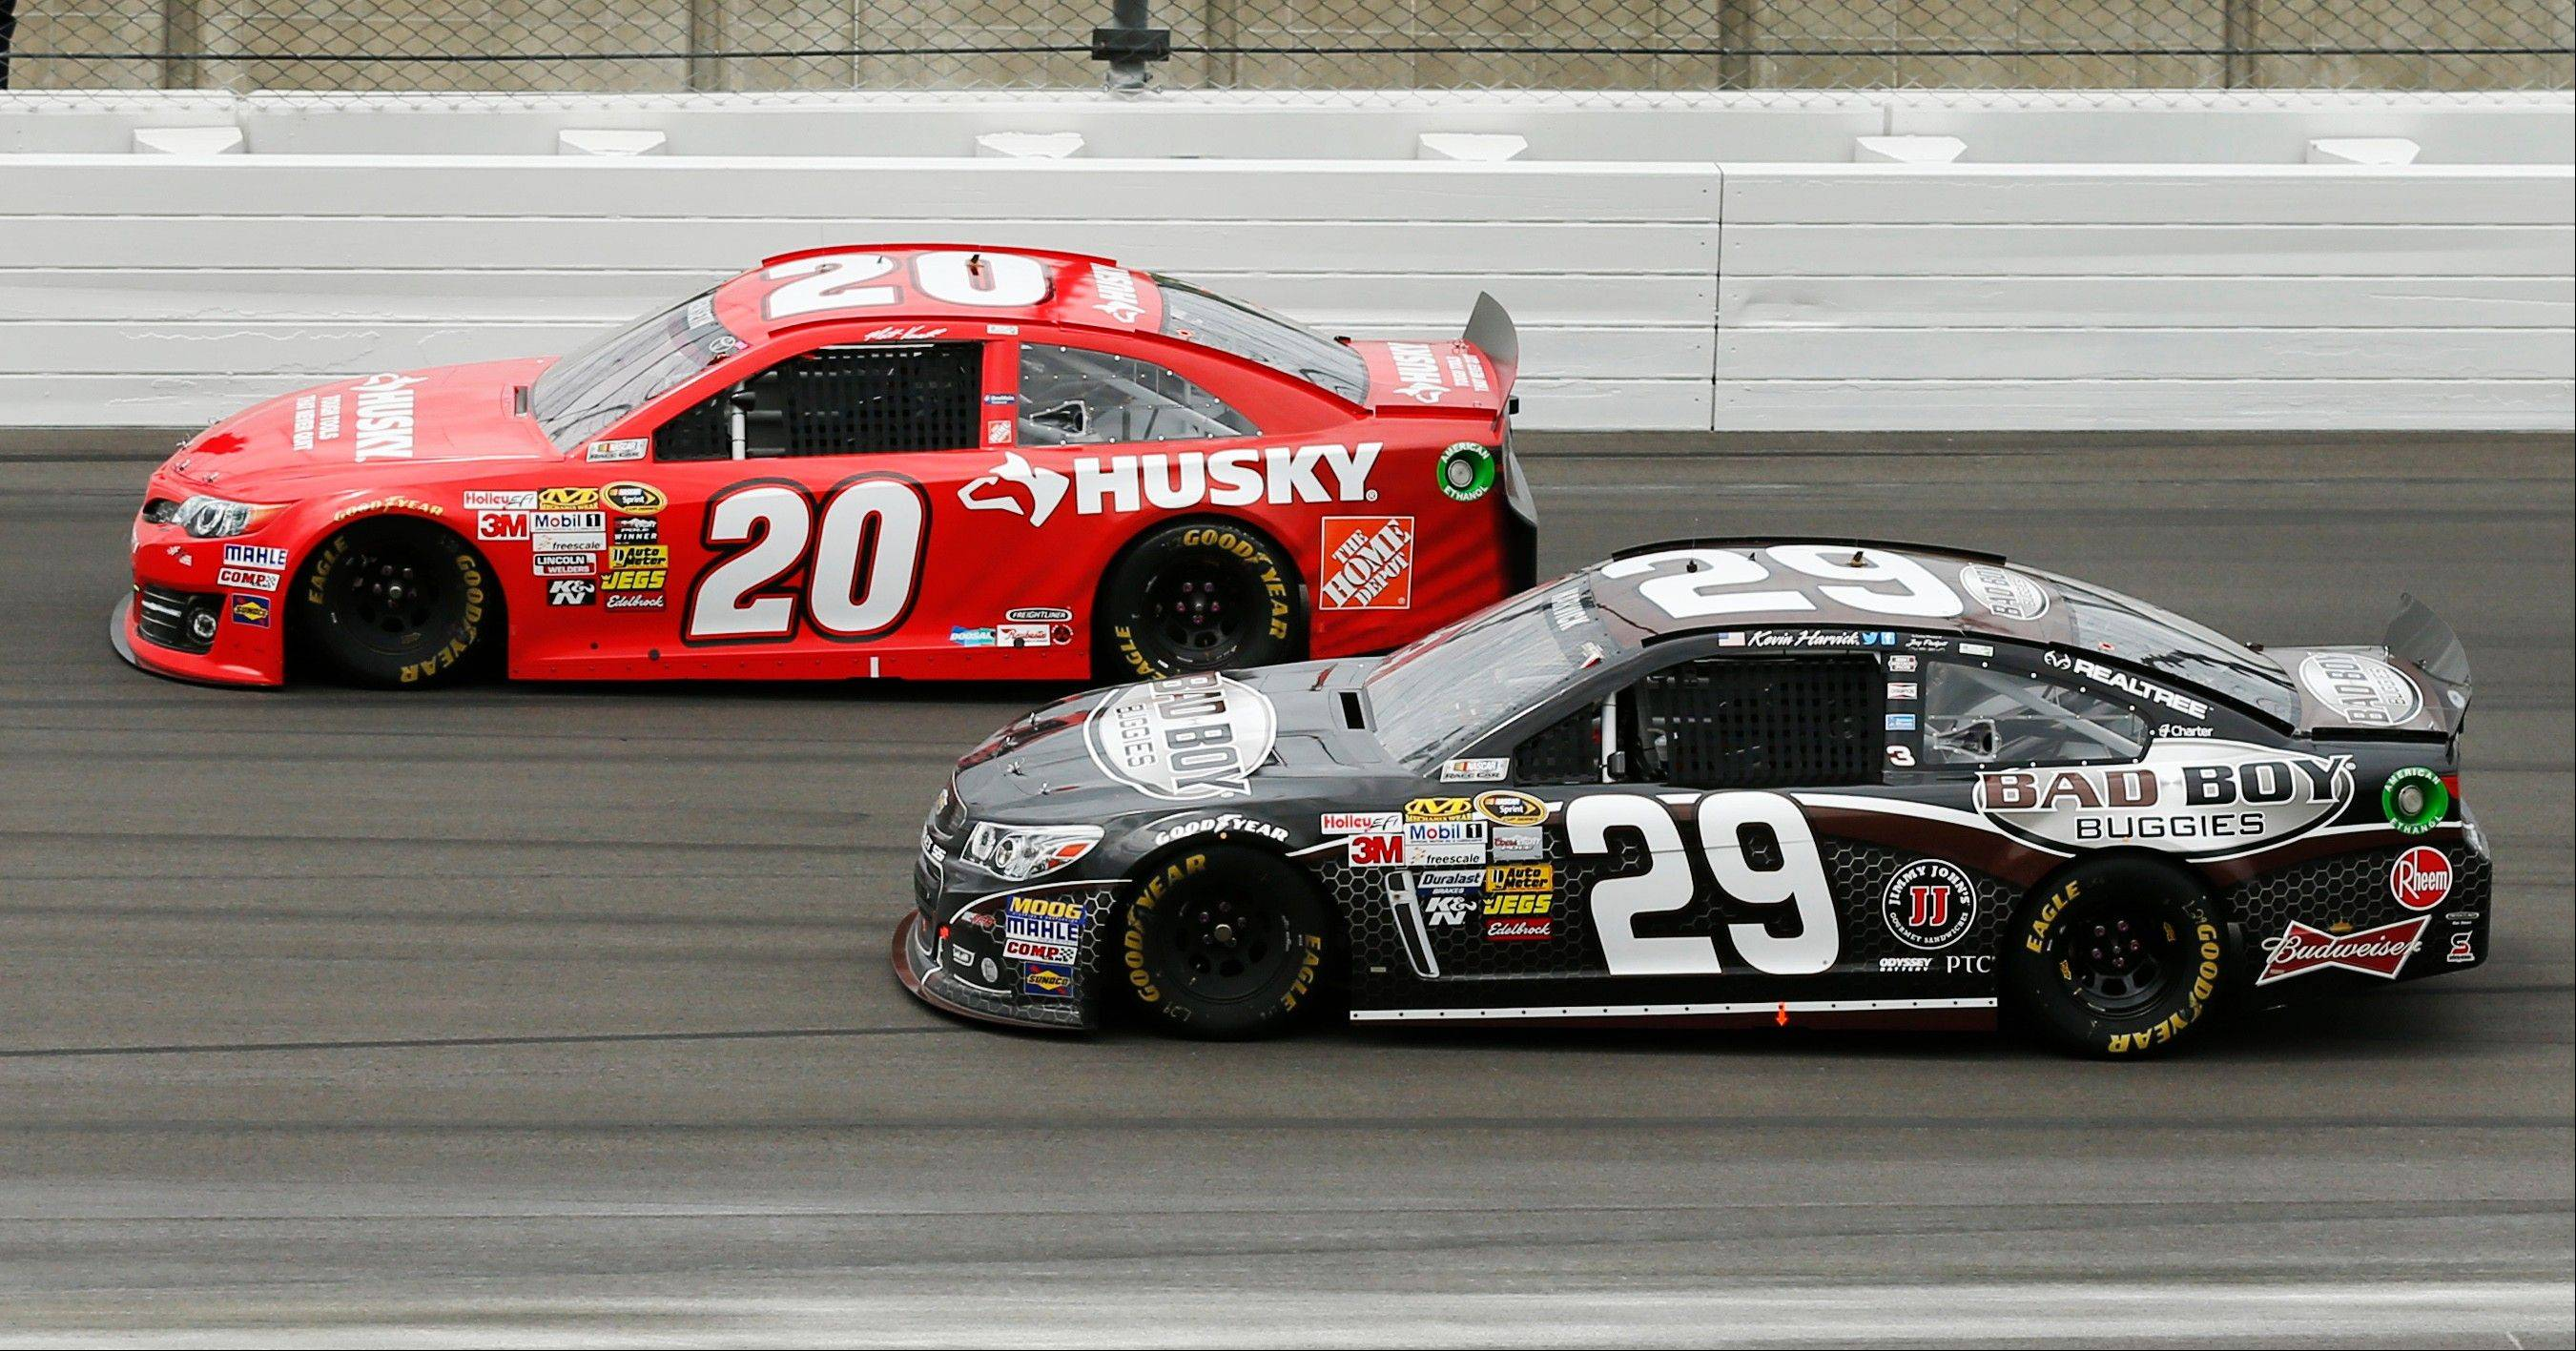 Driver Matt Kenseth, top, leads Kevin Harvick during the NASCAR Sprint Cup series race Sunday at Kansas Speedway in Kansas City, Kan.